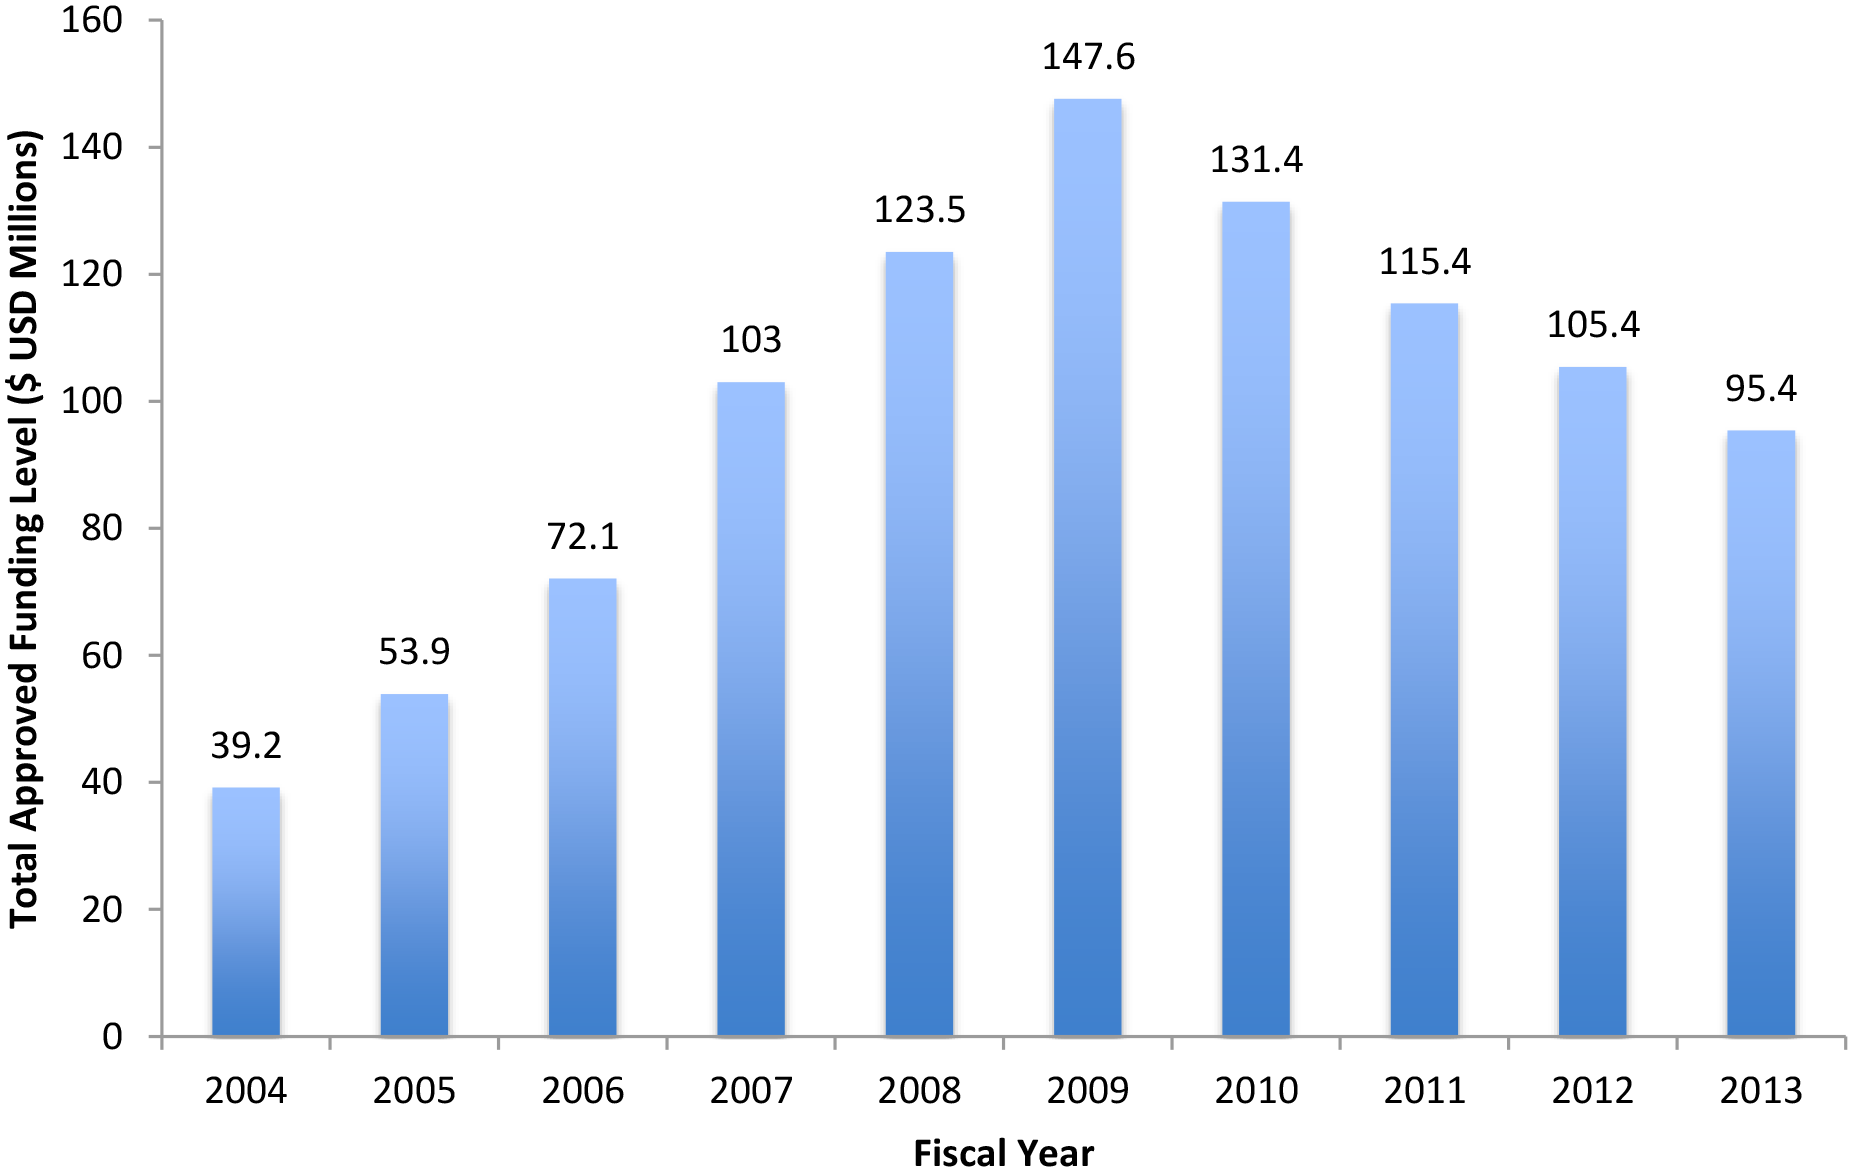 Total PEPFAR approved funding to Rwanda for HIV, tuberculosis (TB)/HIV, and health systems strengthening, 2004–2013.